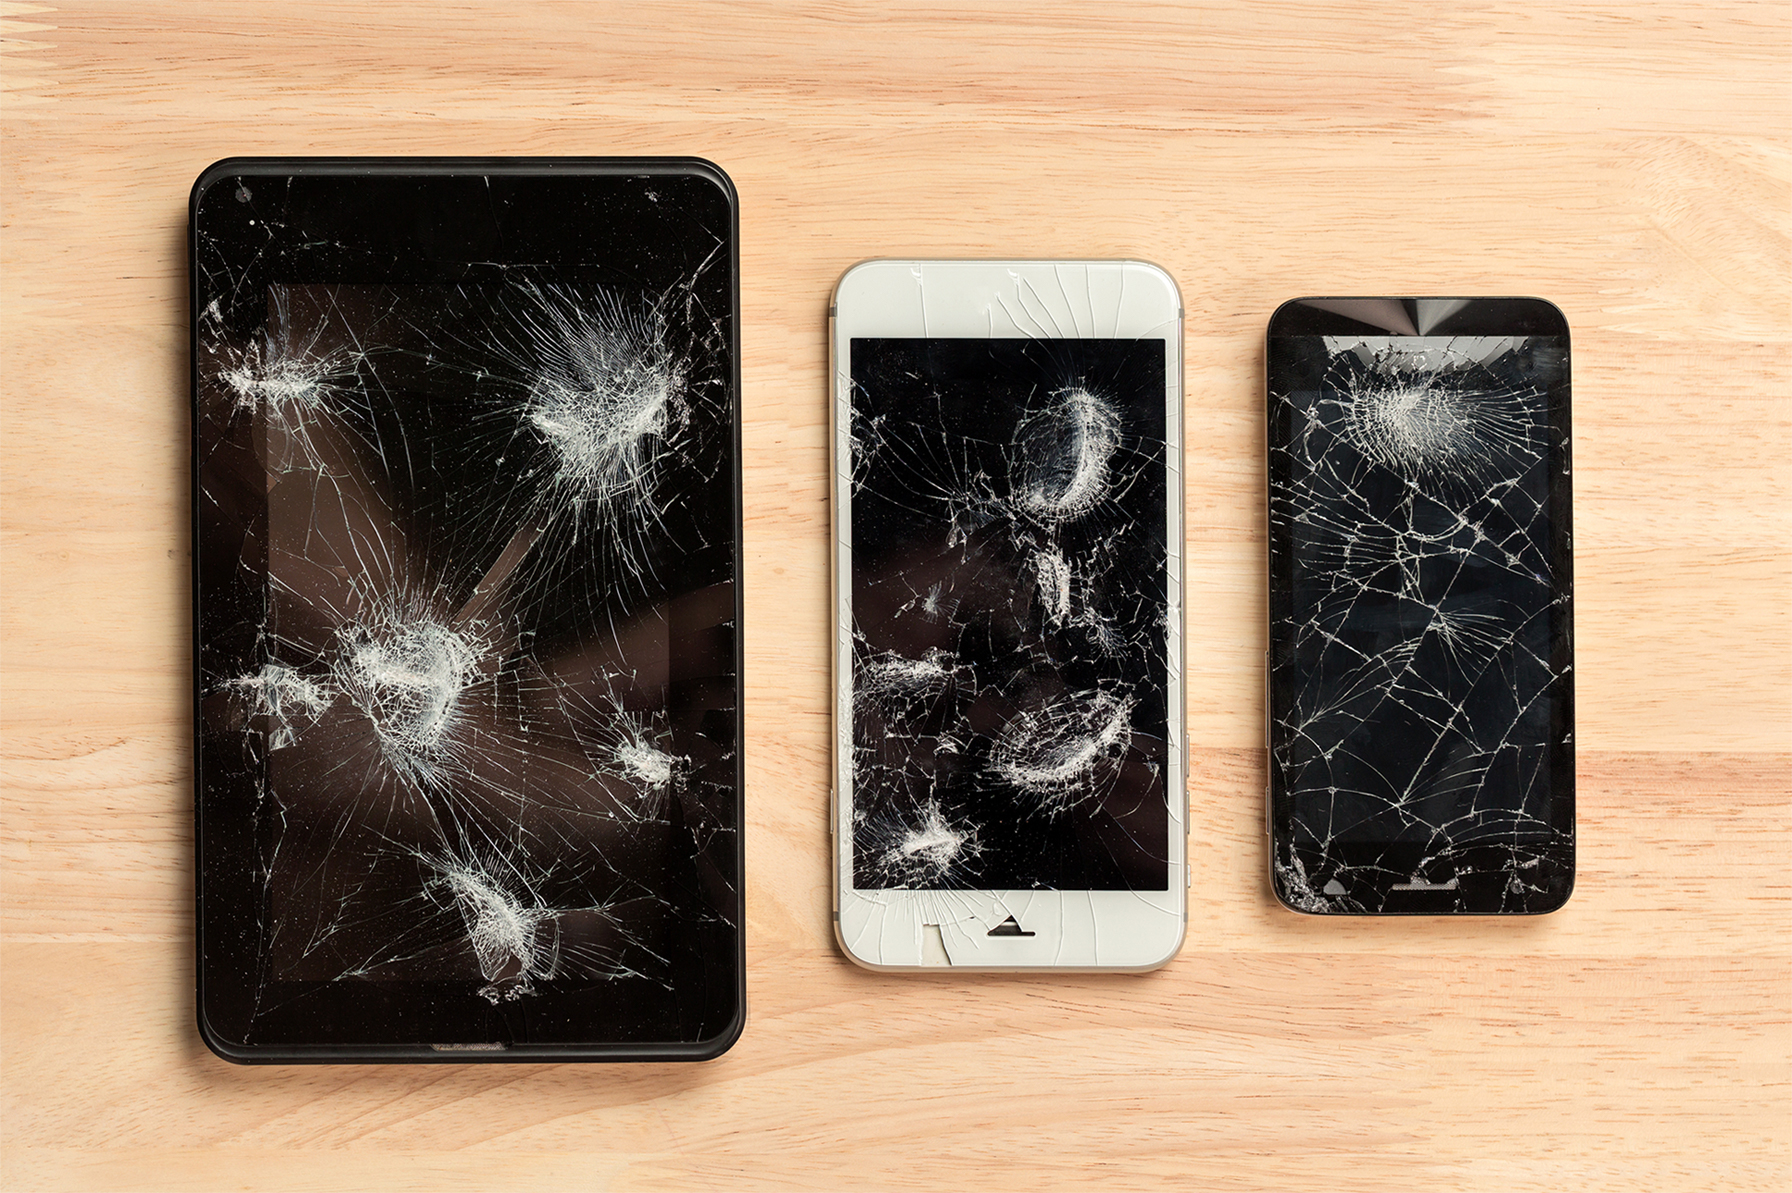 Cracked Phones